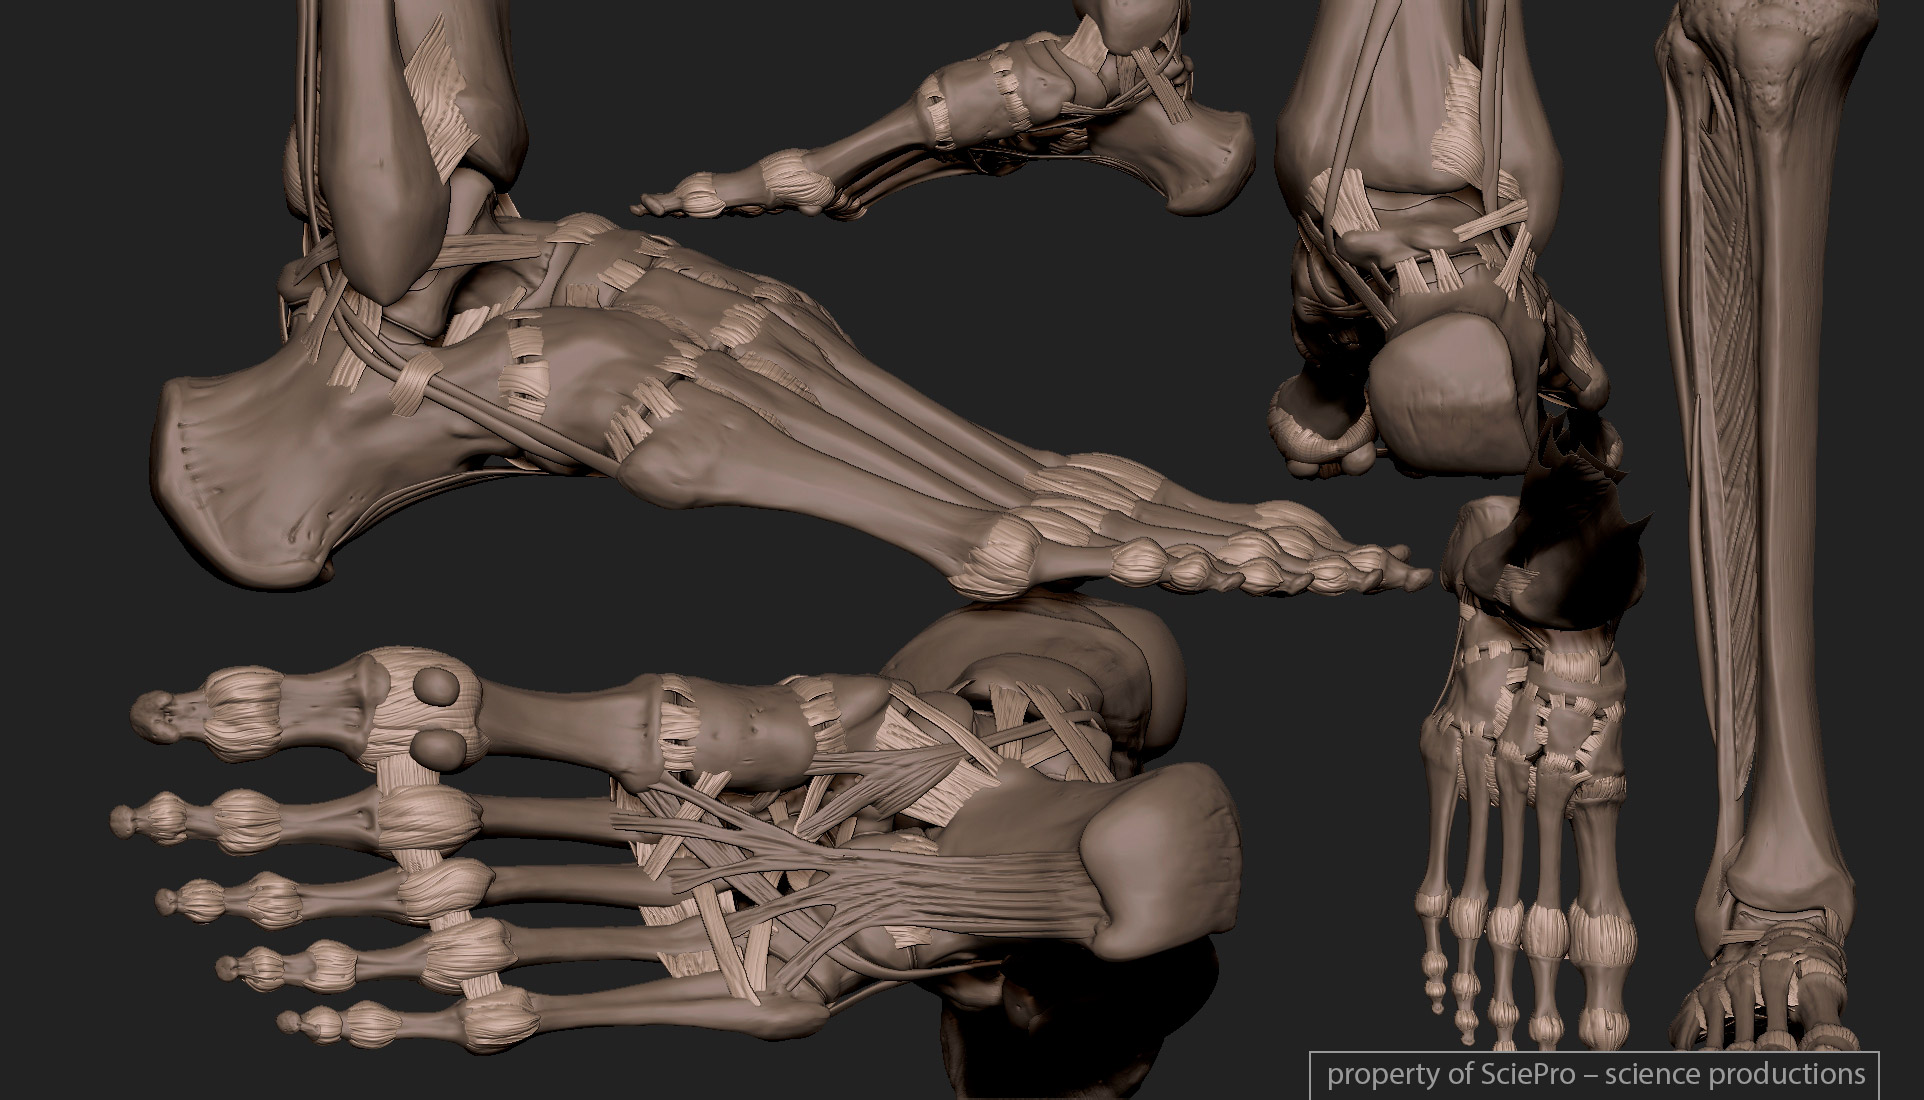 2016.01.01  medicaly acurate average human skeleton 3D model,with all important anatomical landmarks